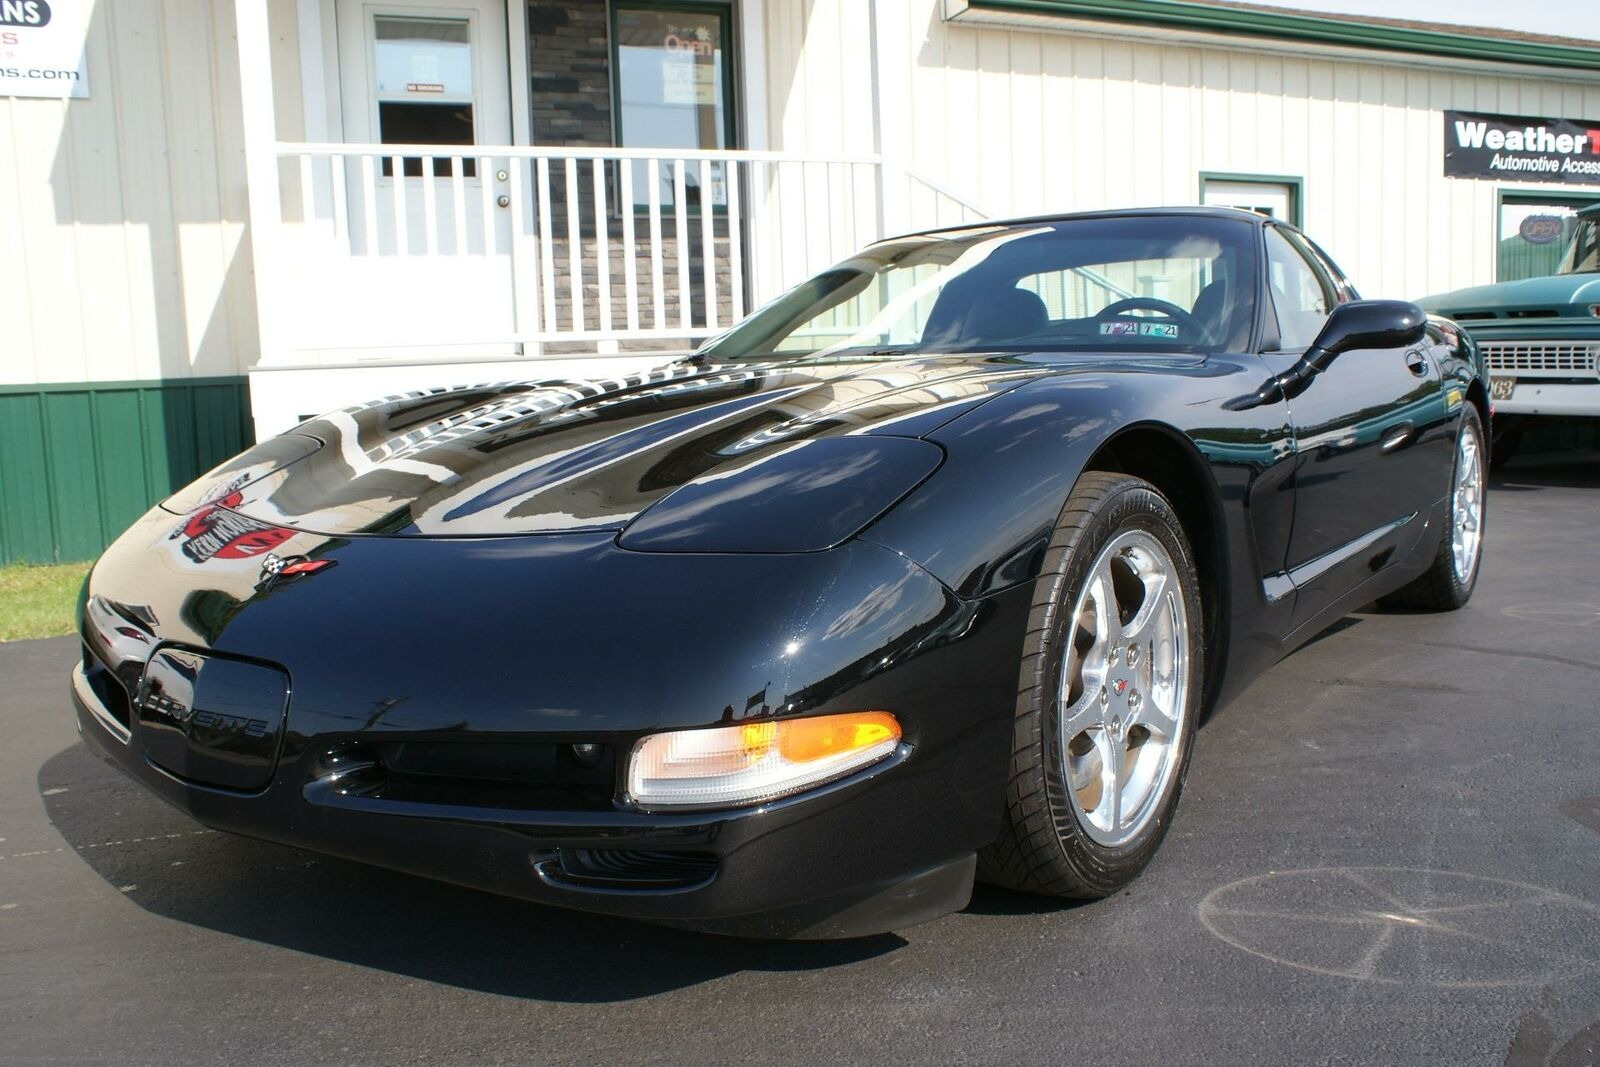 2004 Black Chevrolet Corvette   | C5 Corvette Photo 2